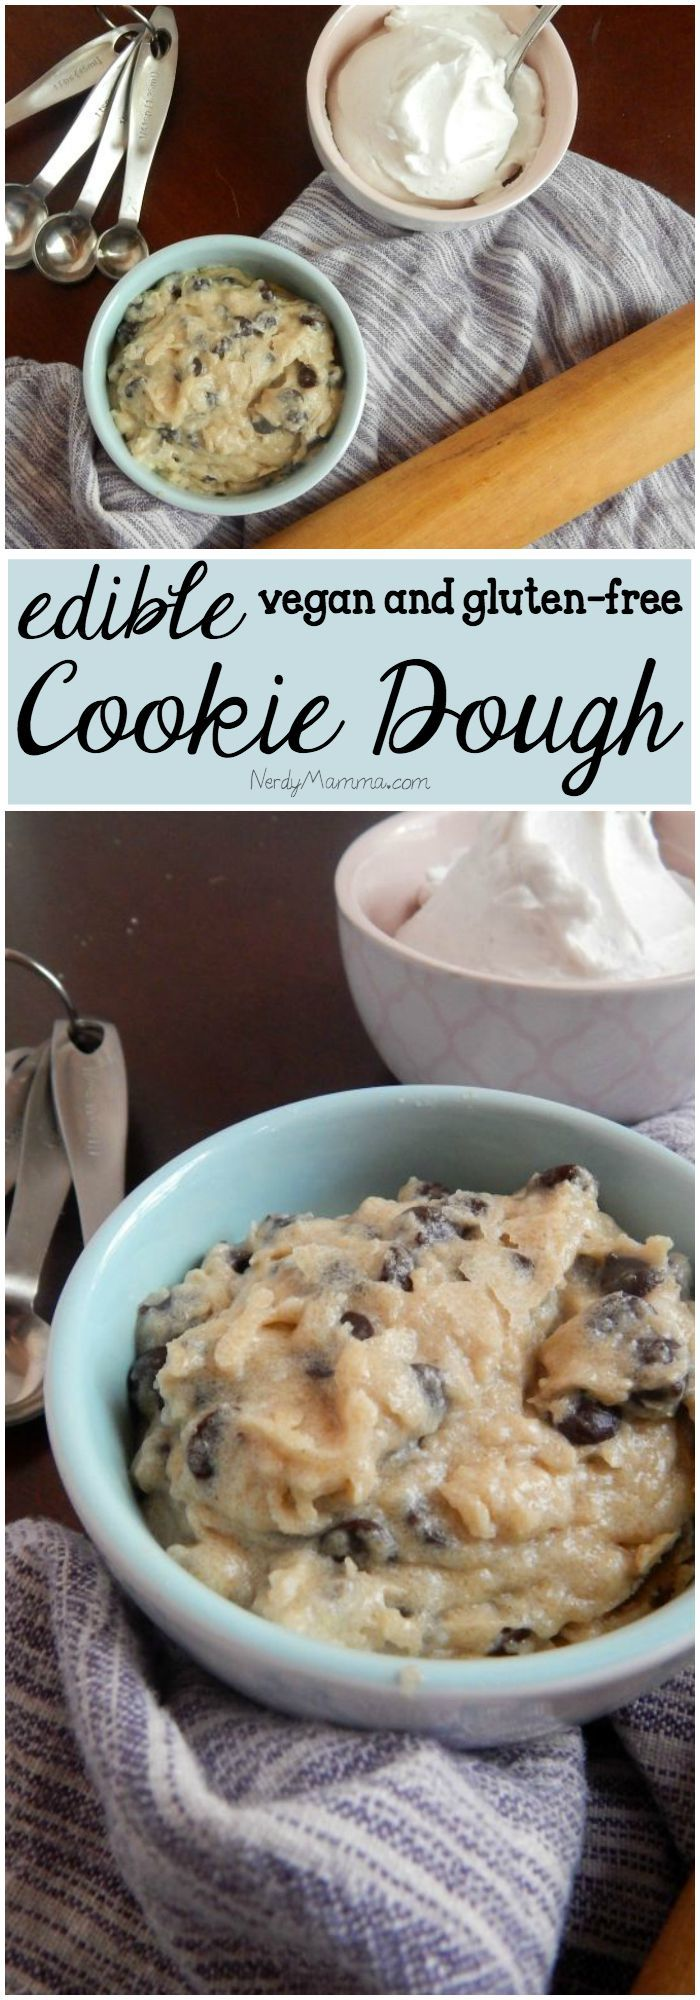 Egg-Free Dairy-Free Edible Chocolate Chip Cookie Dough | Recipe ...